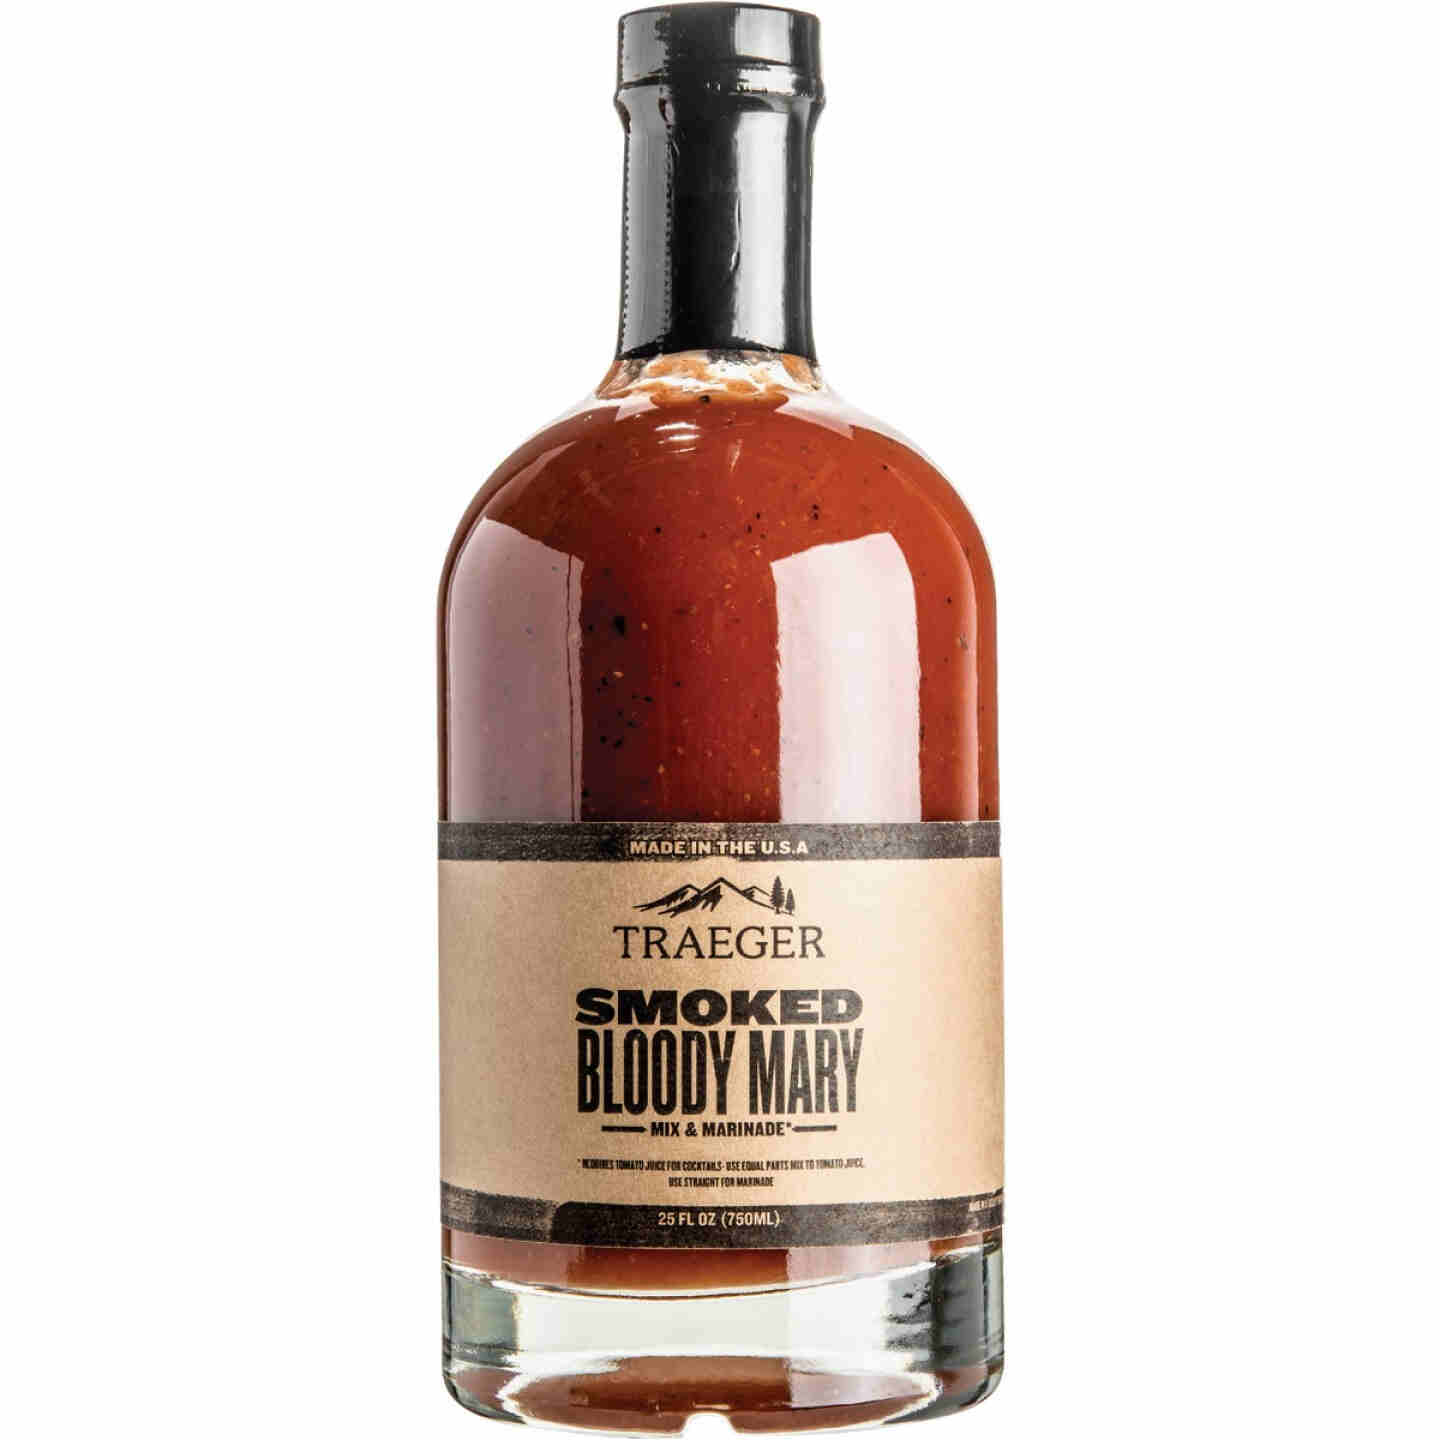 Traeger 25 Oz. Smoked Bloody Mary Mix Image 1